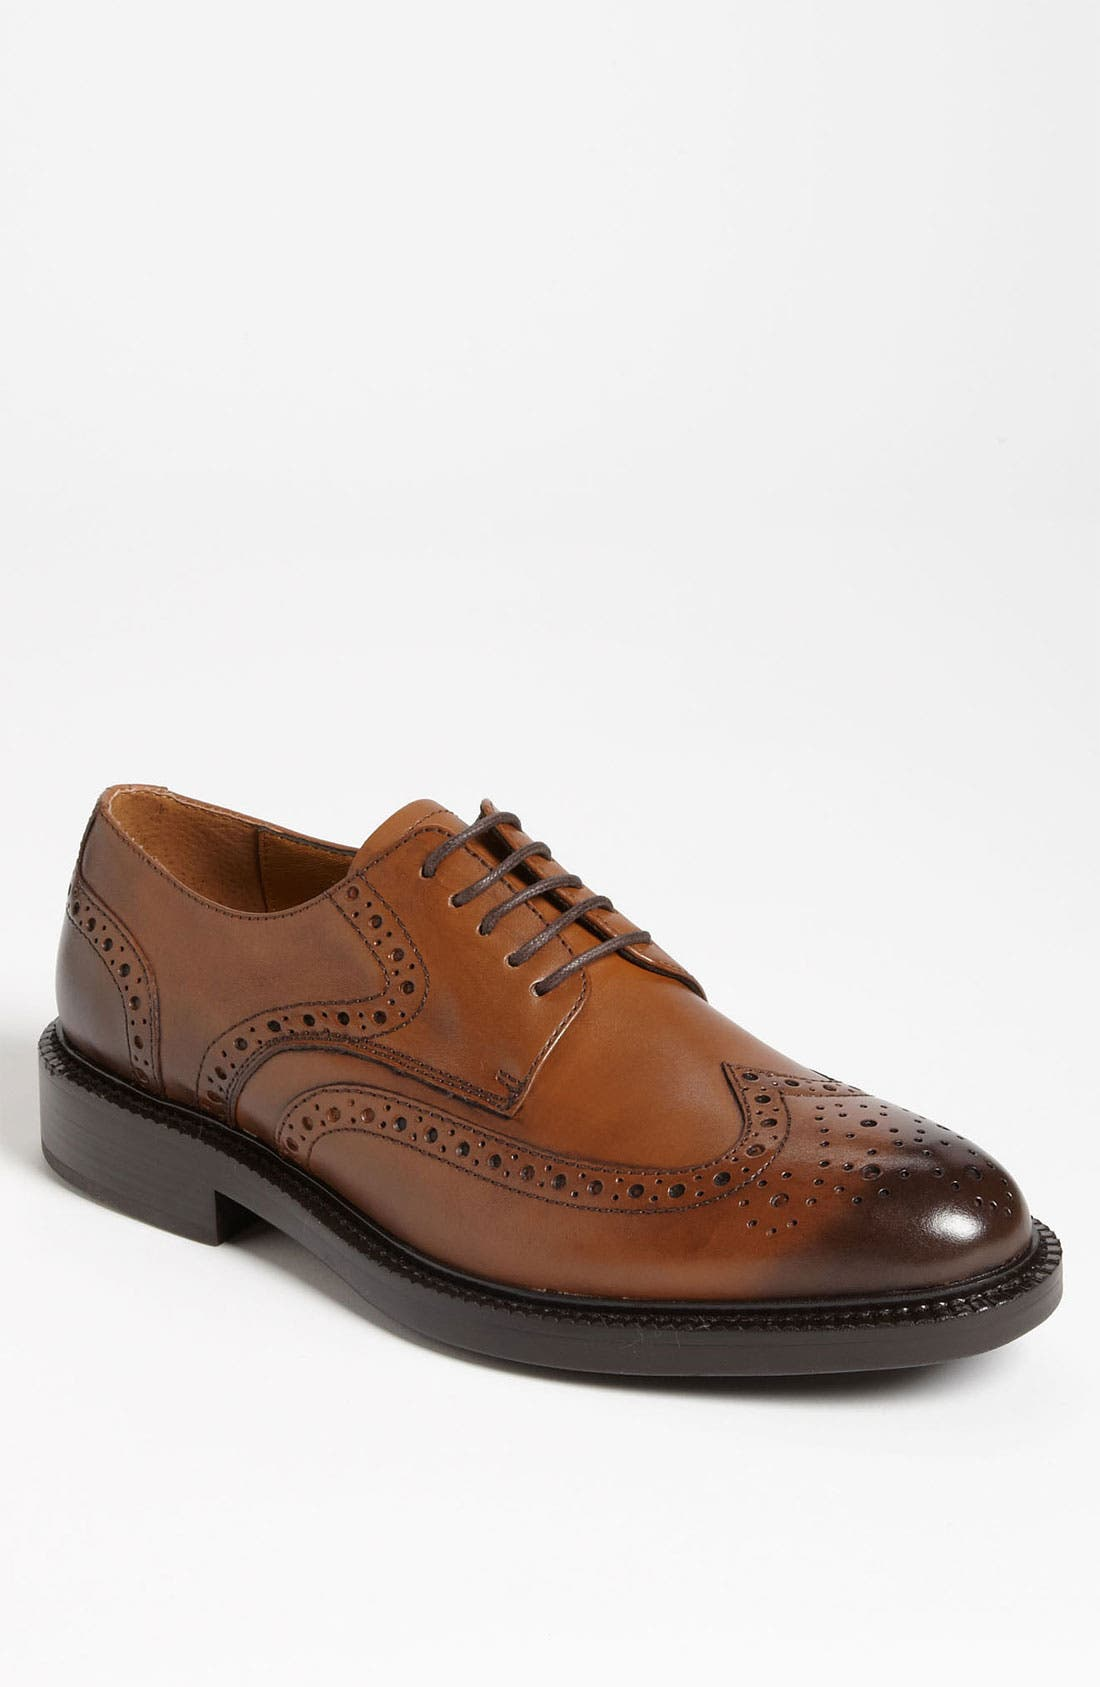 Main Image - 1901 'Chester' Wingtip